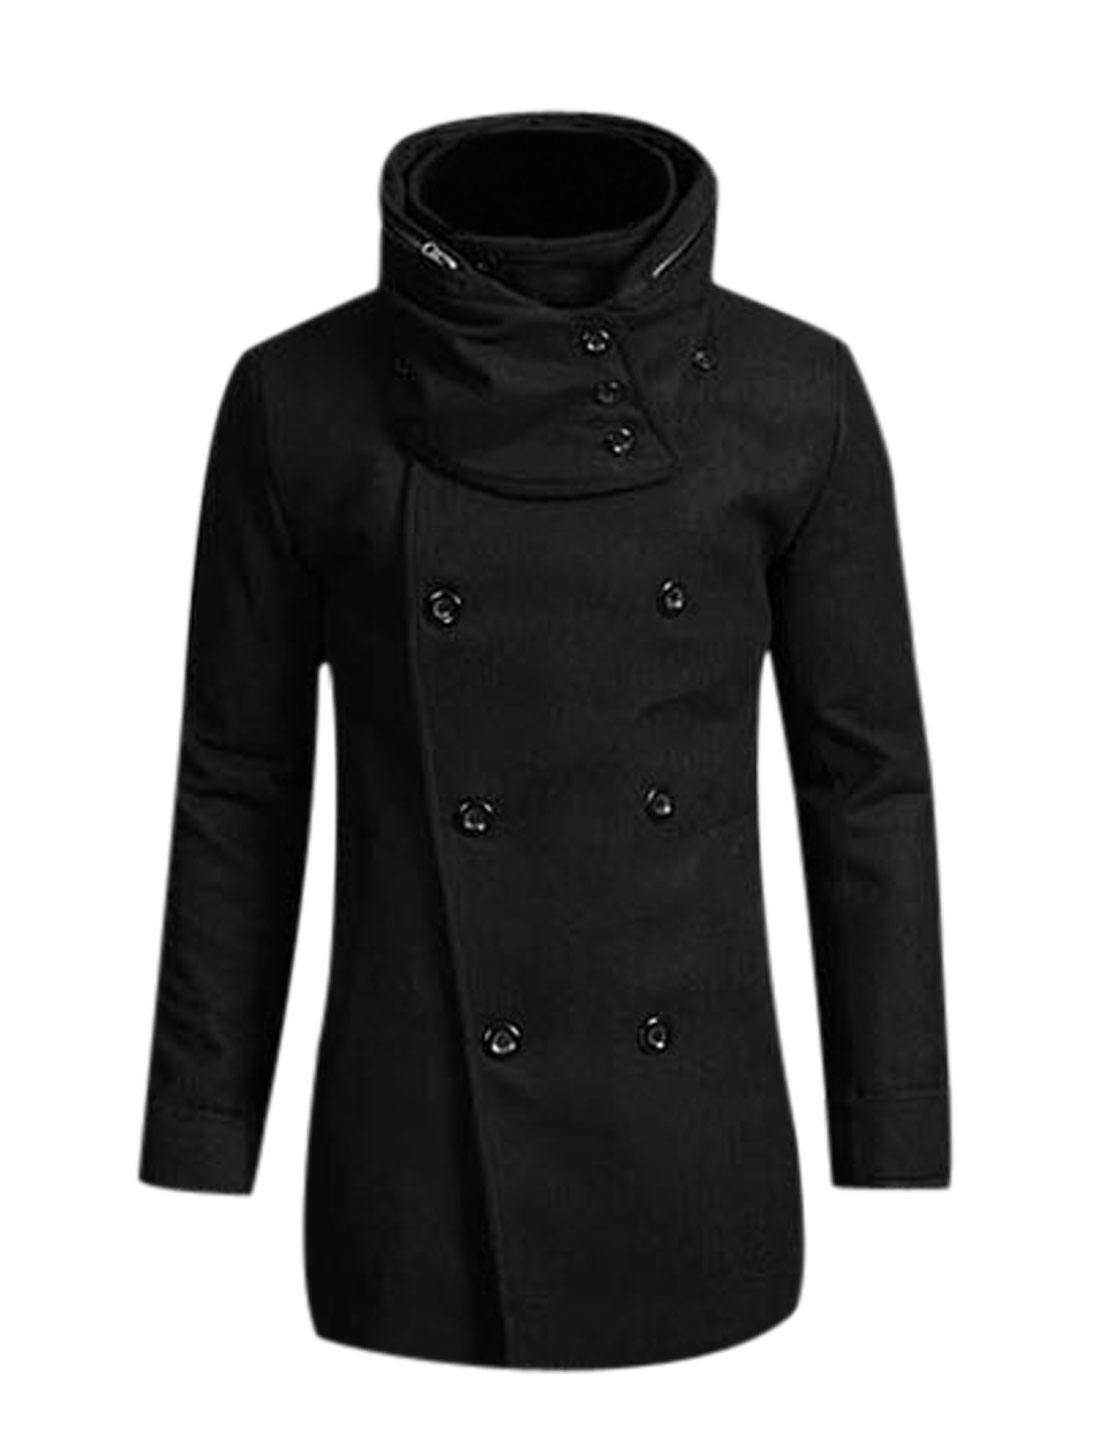 Men Convertible Collar Button Down Fashion Trench Jacket Black M